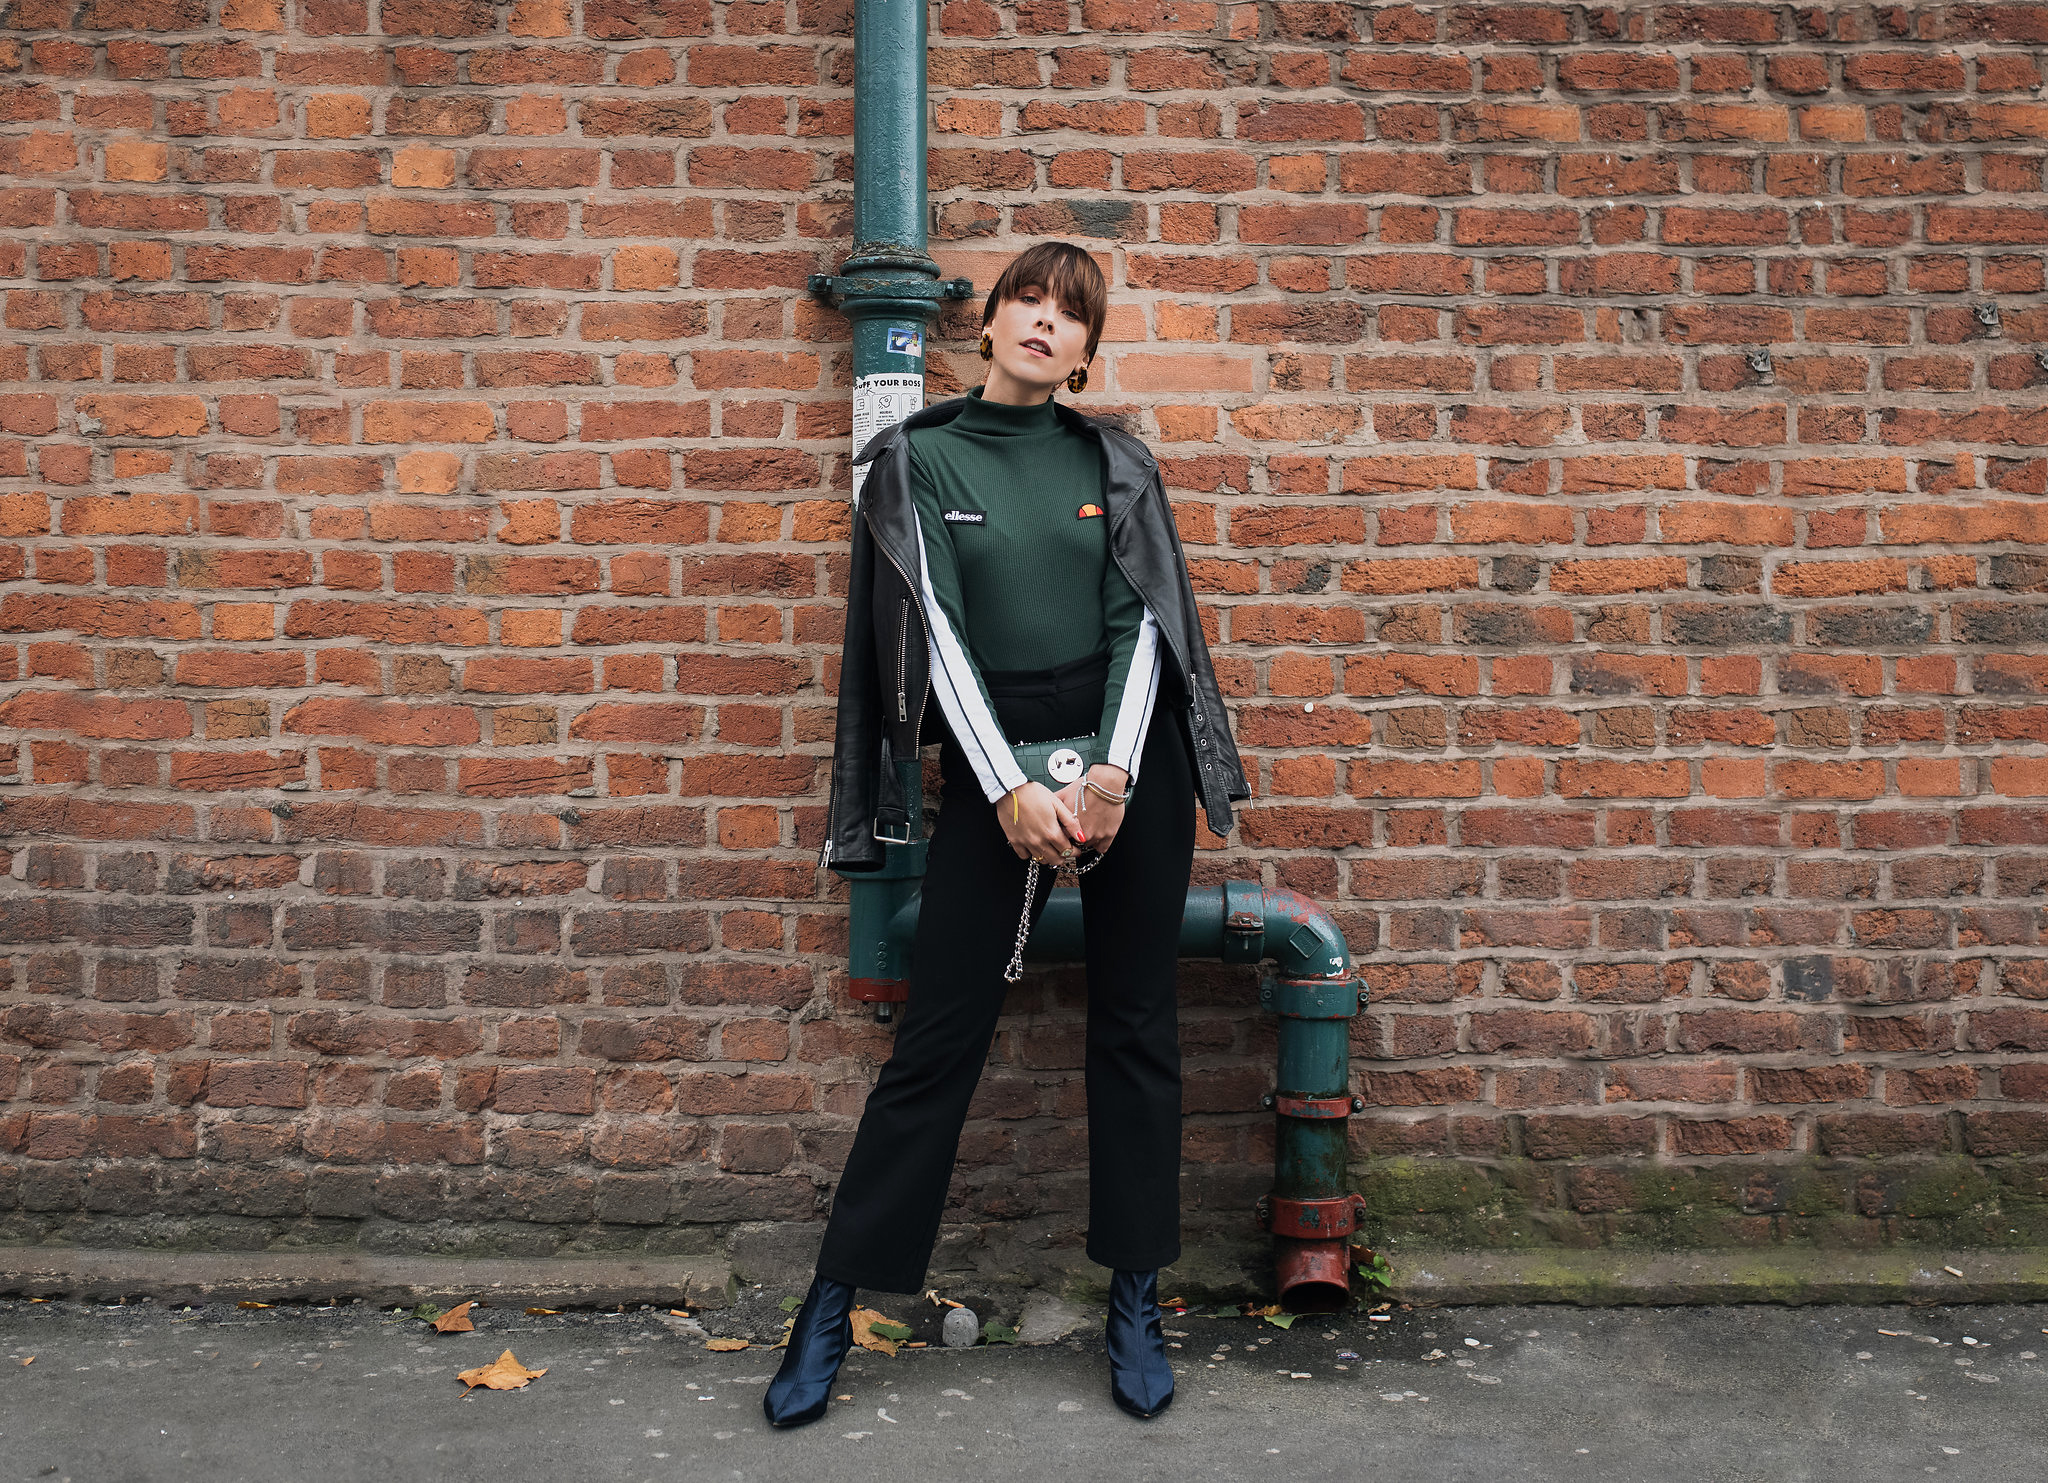 MEGAN ELLABY HOW TO WEAR KICK FLARES